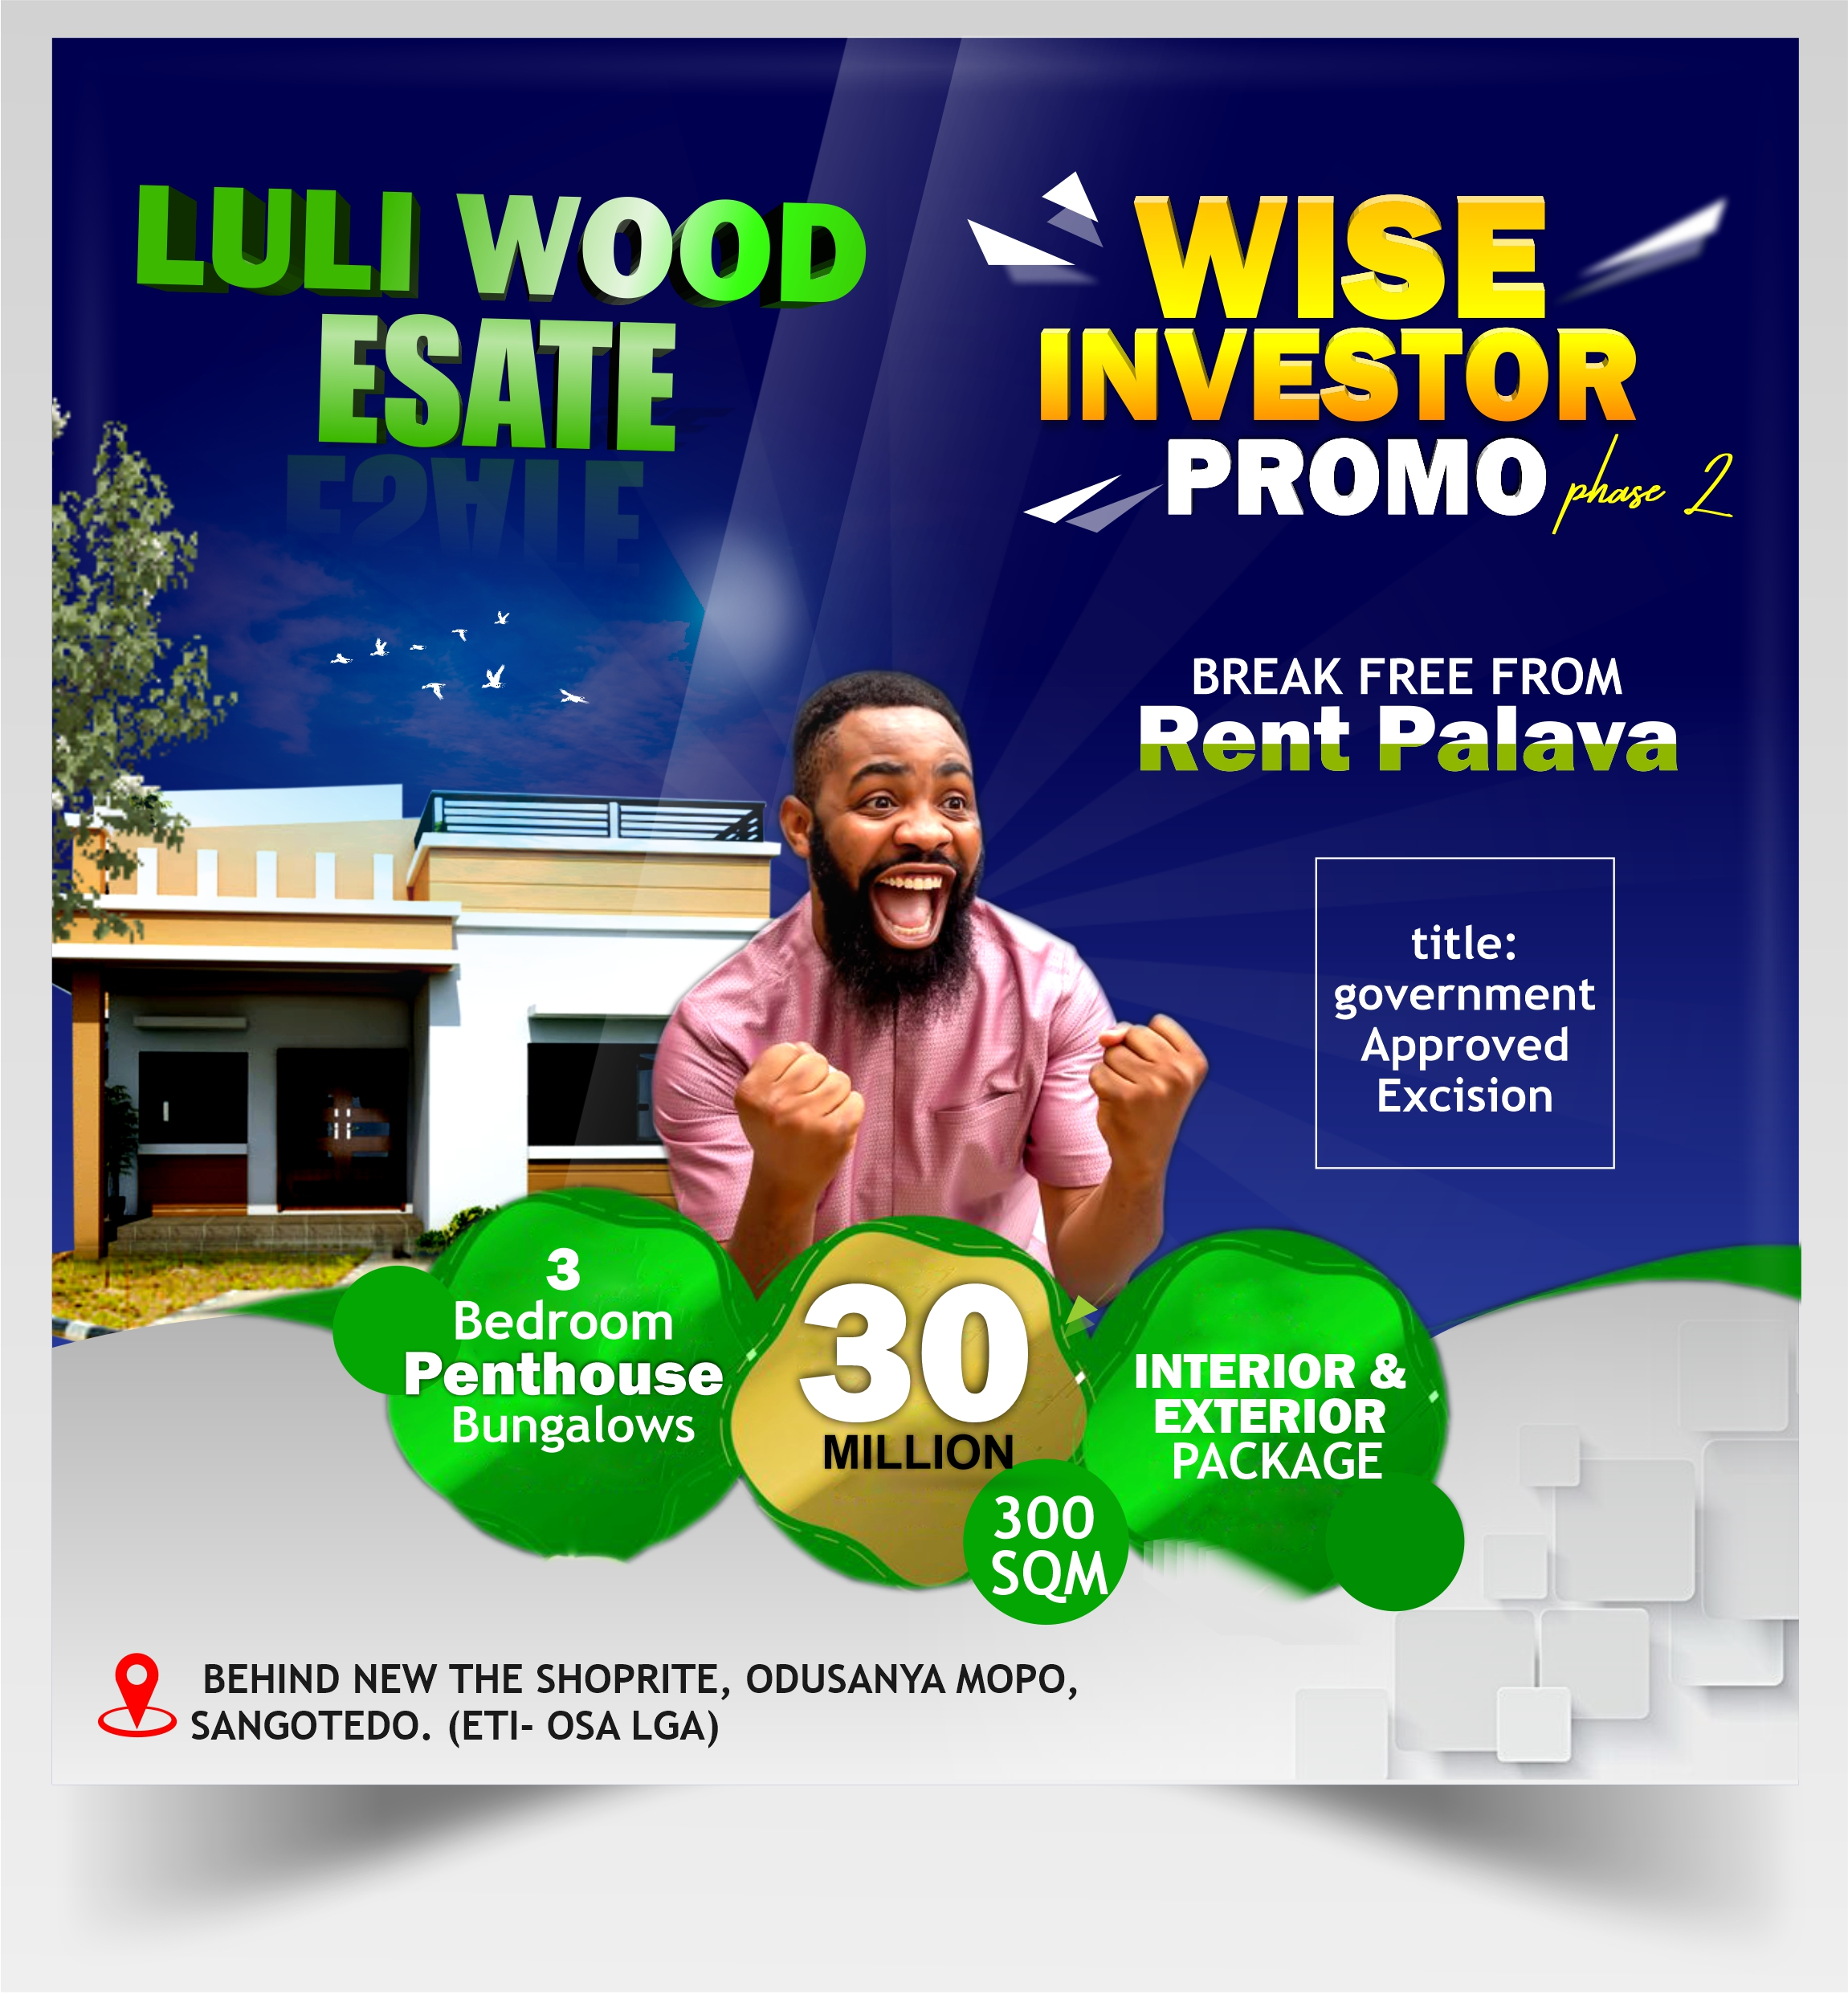 WISE INVESTOR PROMO PHASE 3 BEDROOM PENTHOUSE BUNGALOW WEBSITE